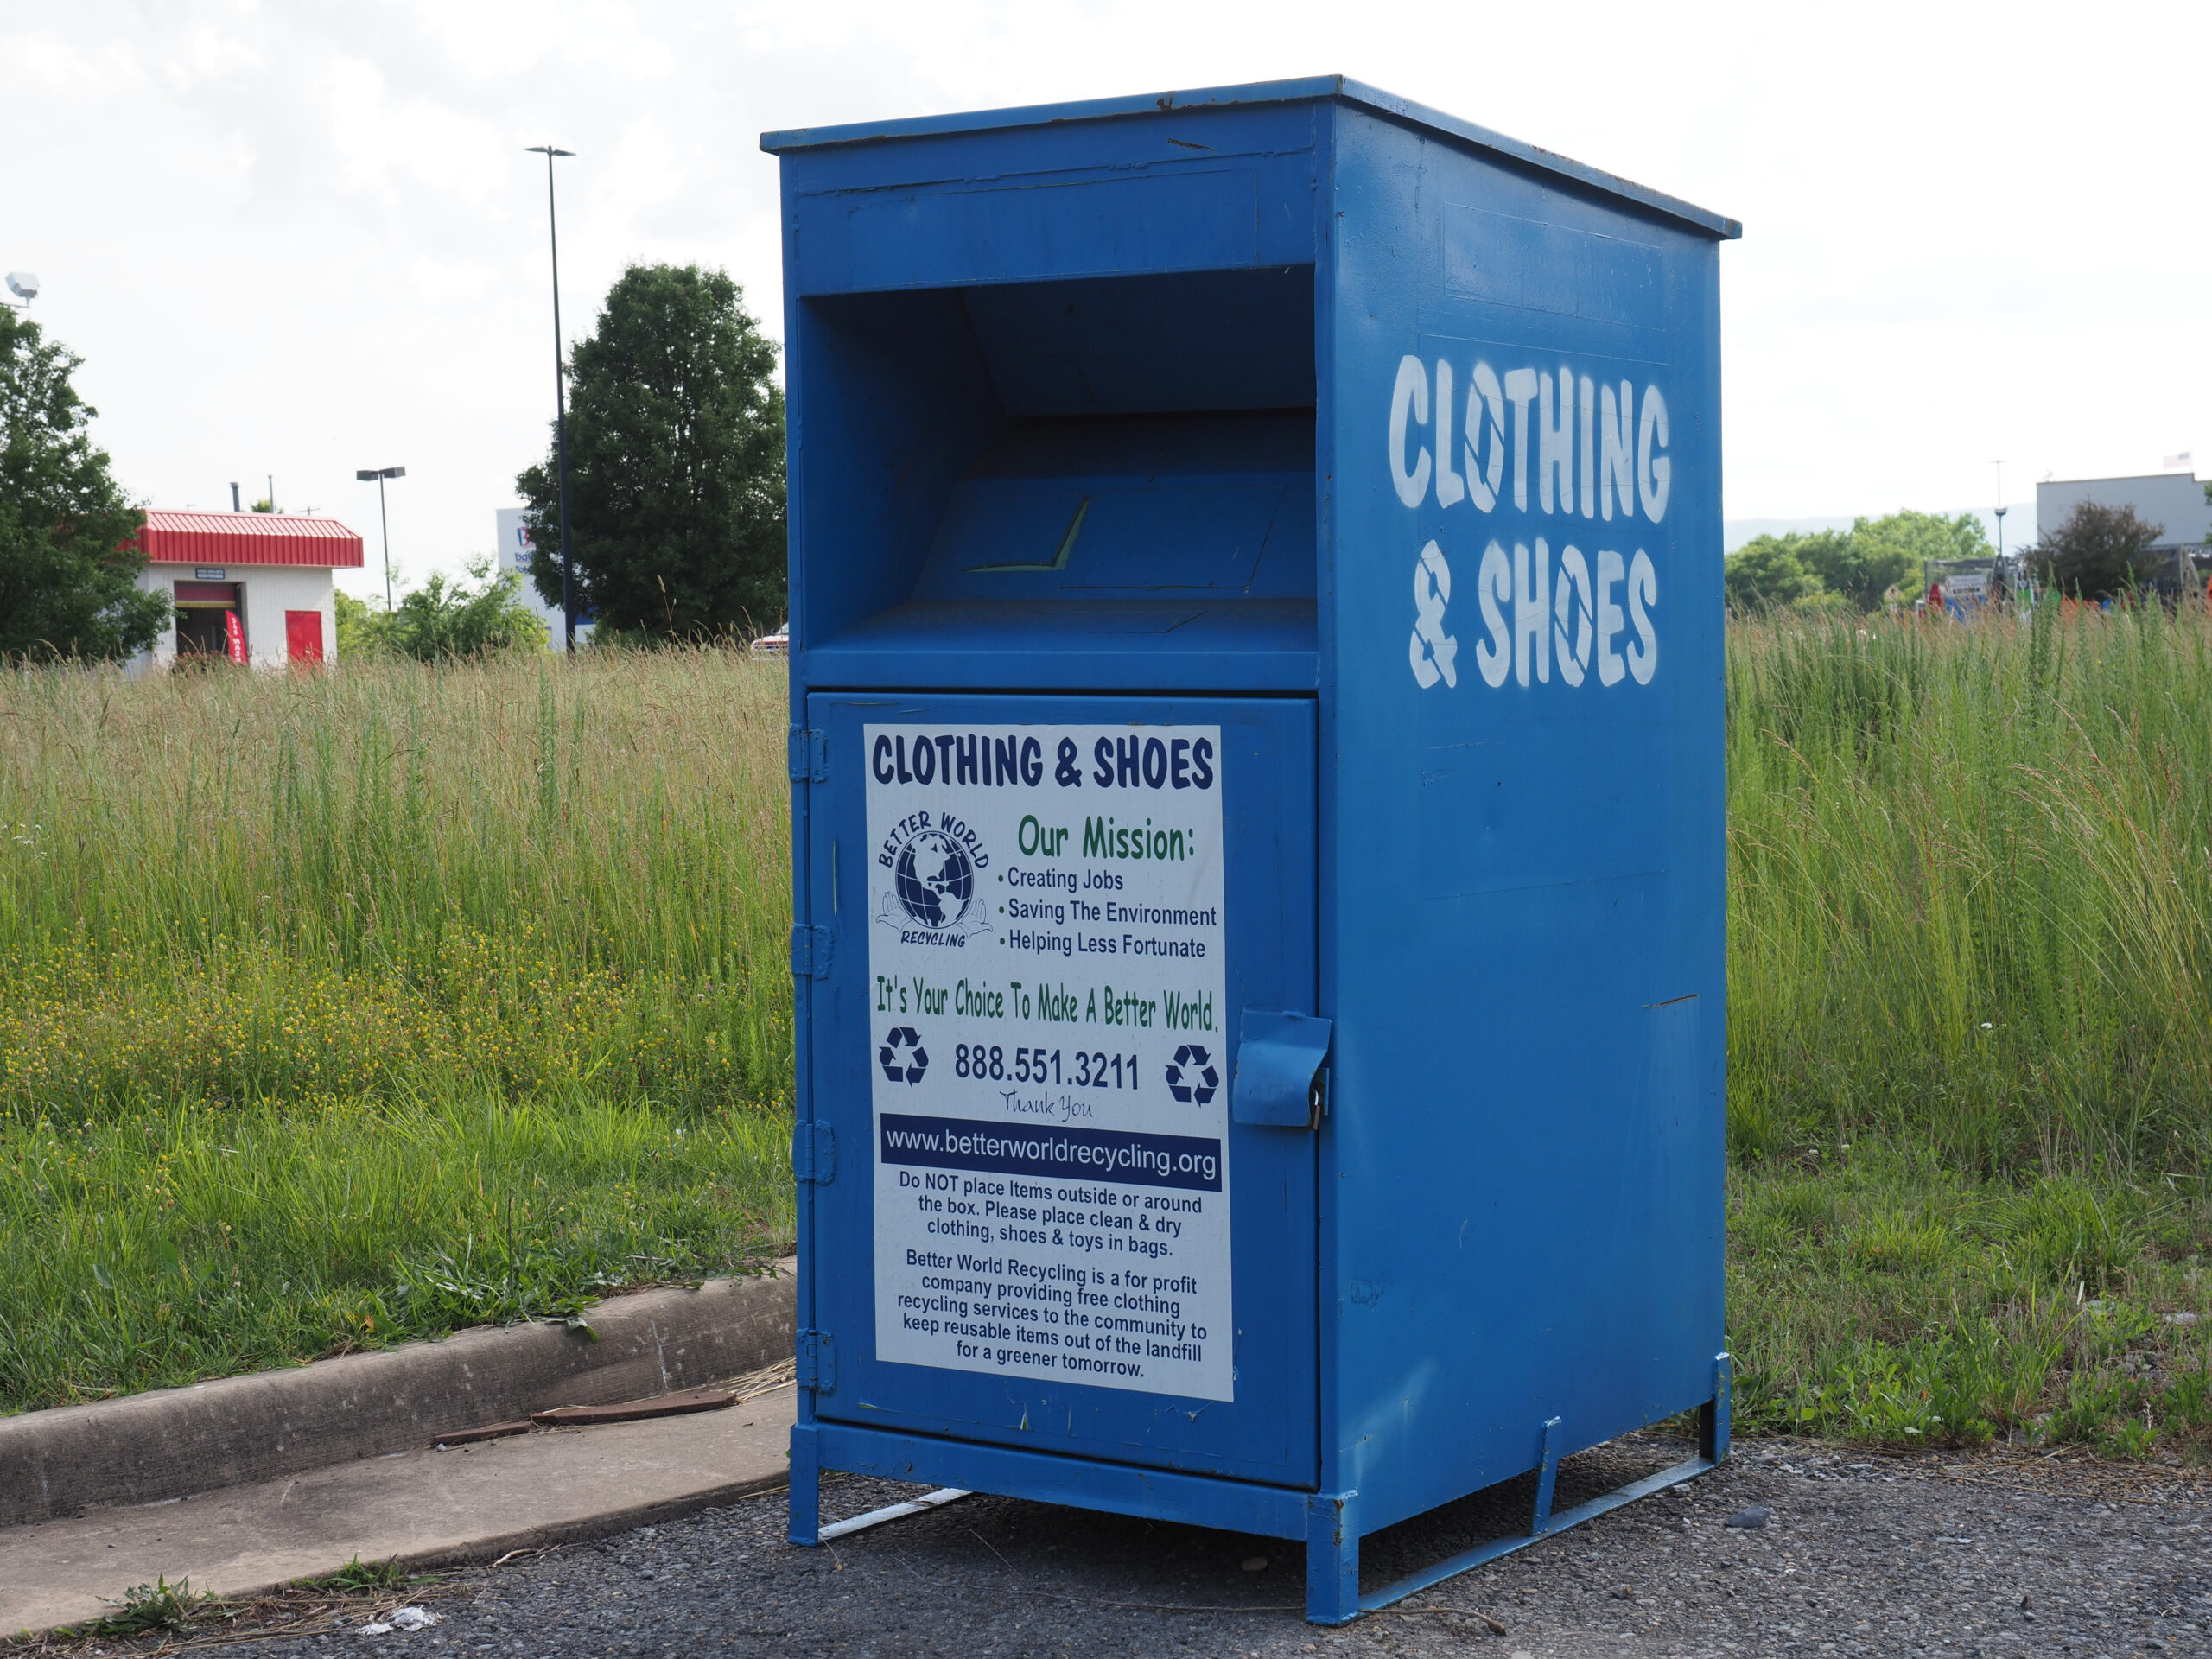 Luray,,Usa,-,June,6,,2019:,A,Container,For,Recycling